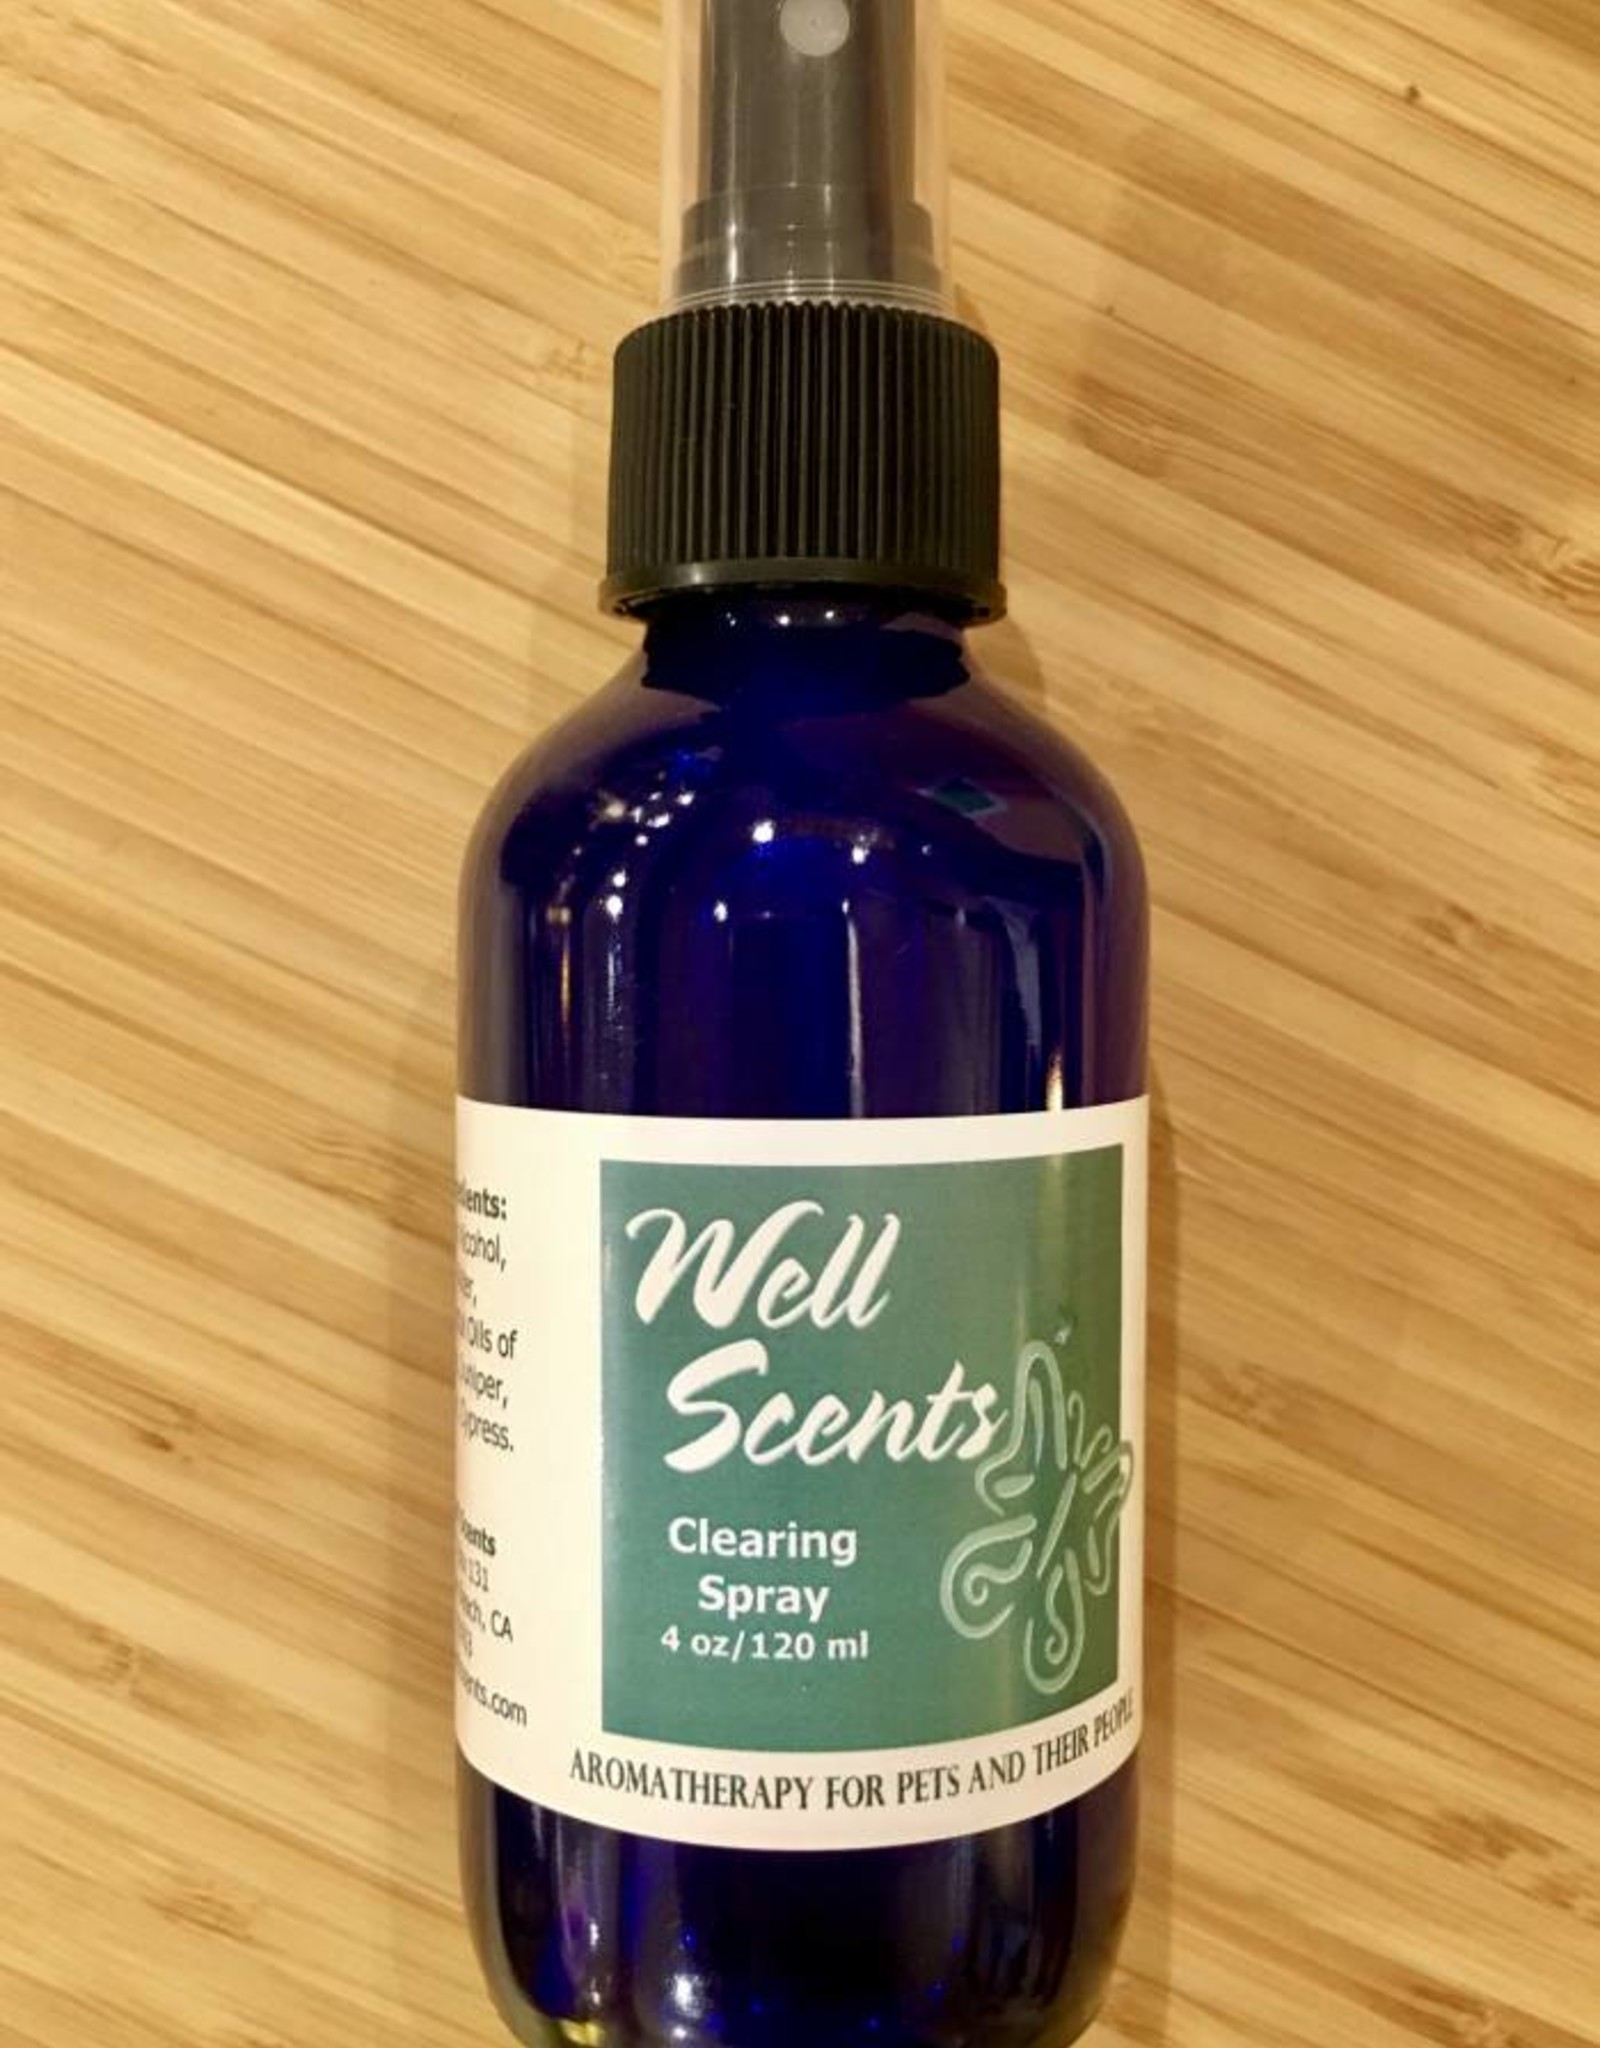 Well Scents Well Scents Clearing Spray 4oz